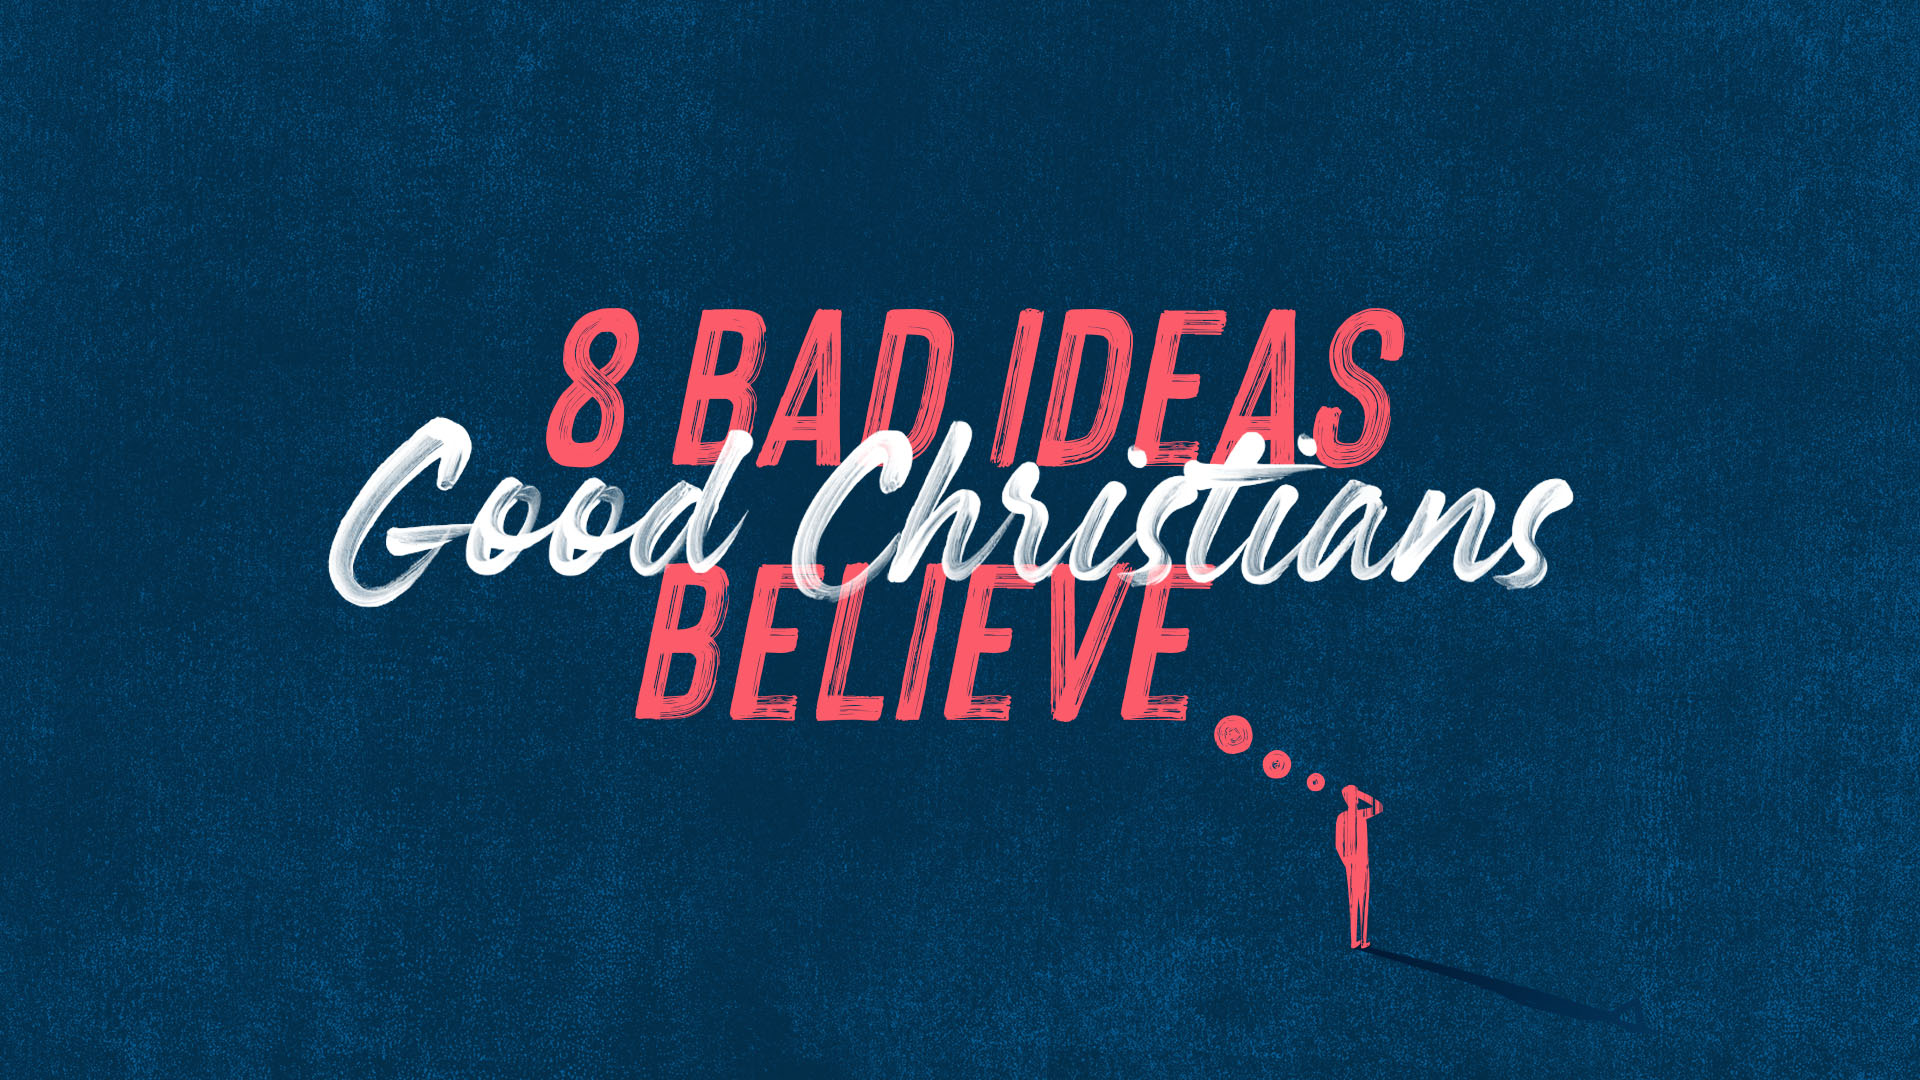 8 bad ideas Good Christians Believe